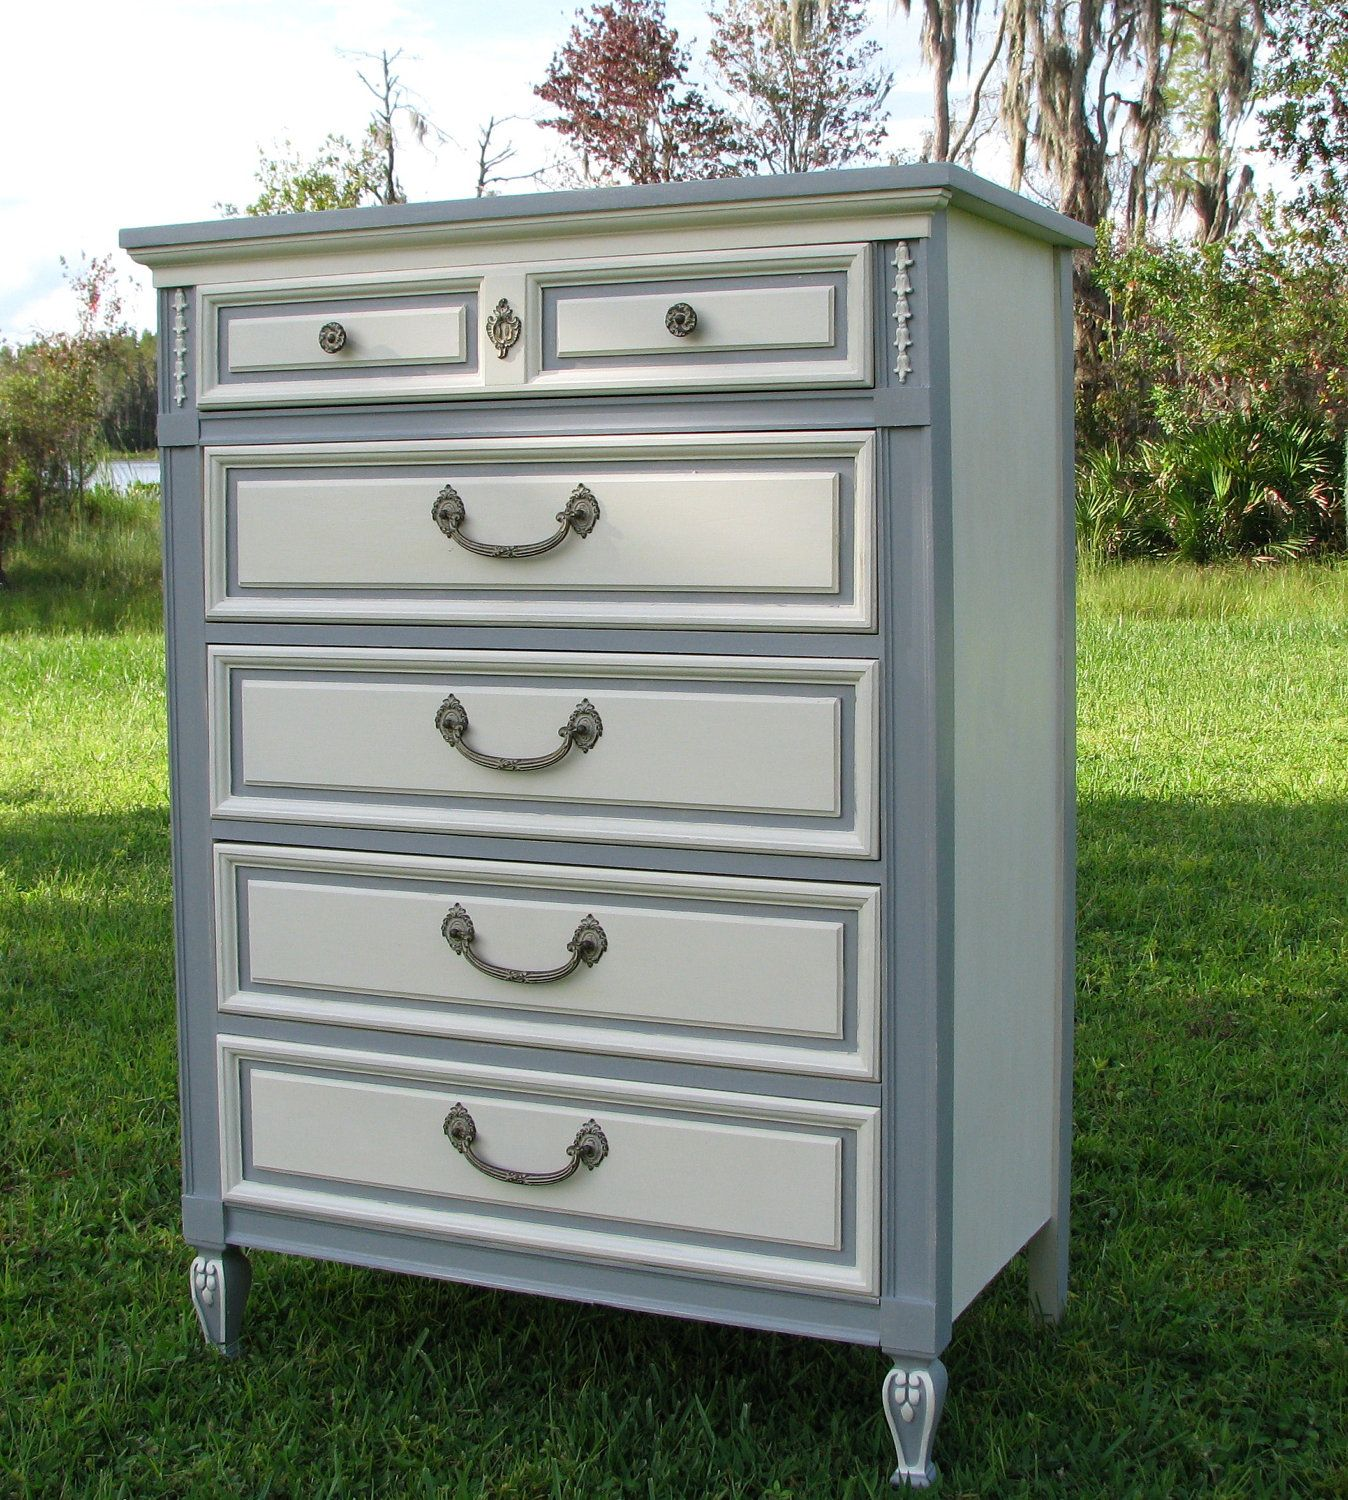 Shabby Chic Dresser, Painted Furniture, Gray and White